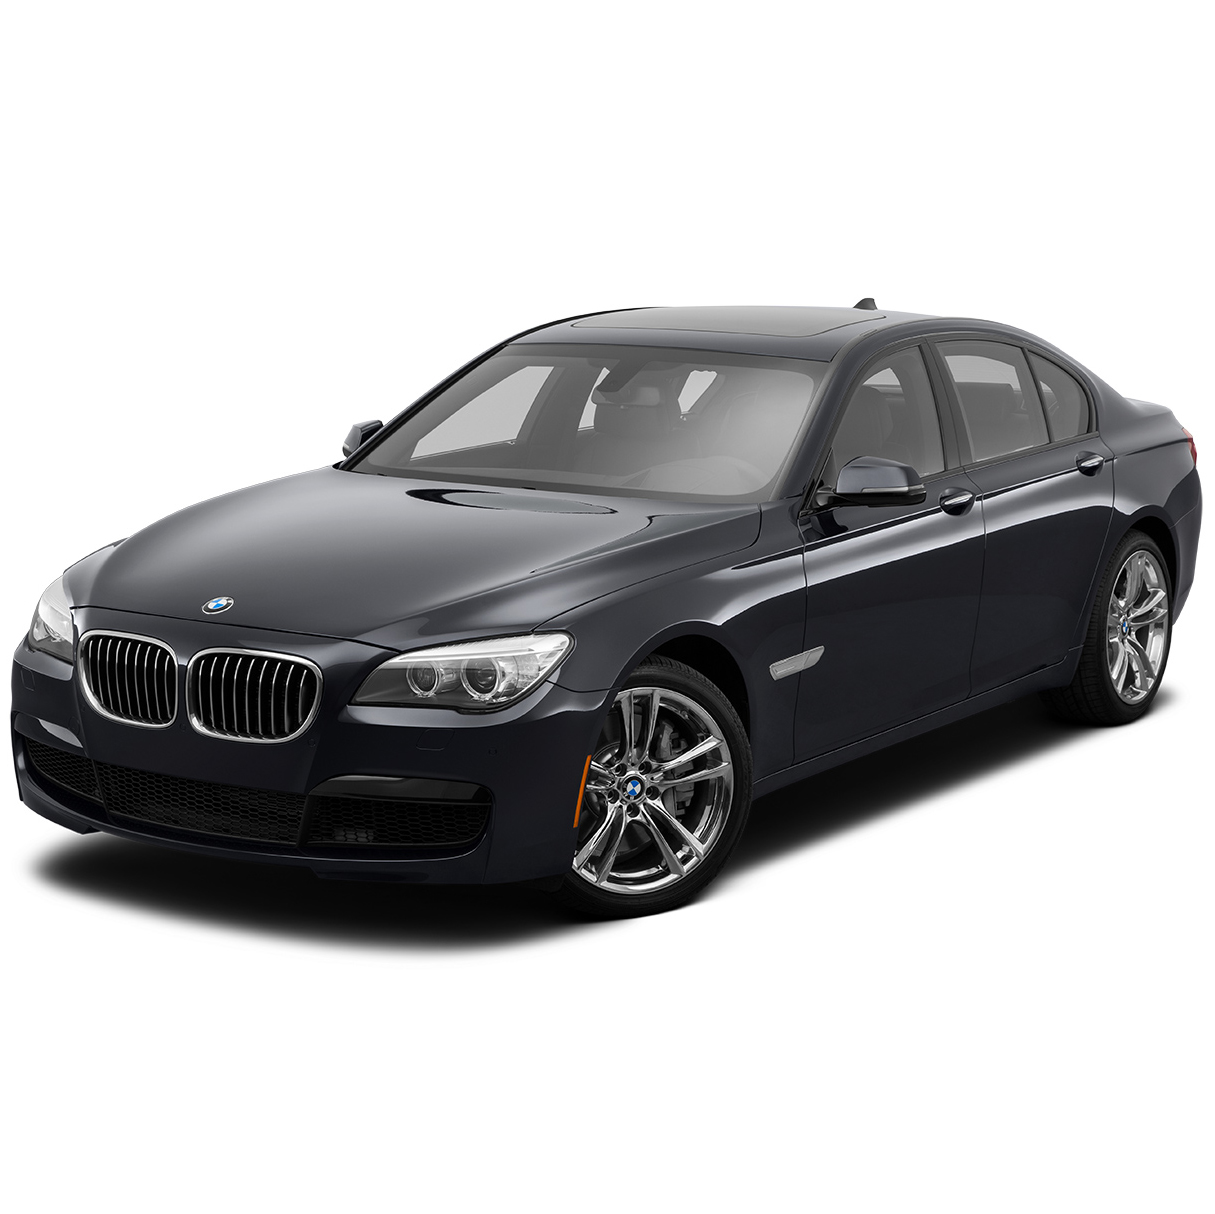 BMW 7 Series Car Mats (All Models)